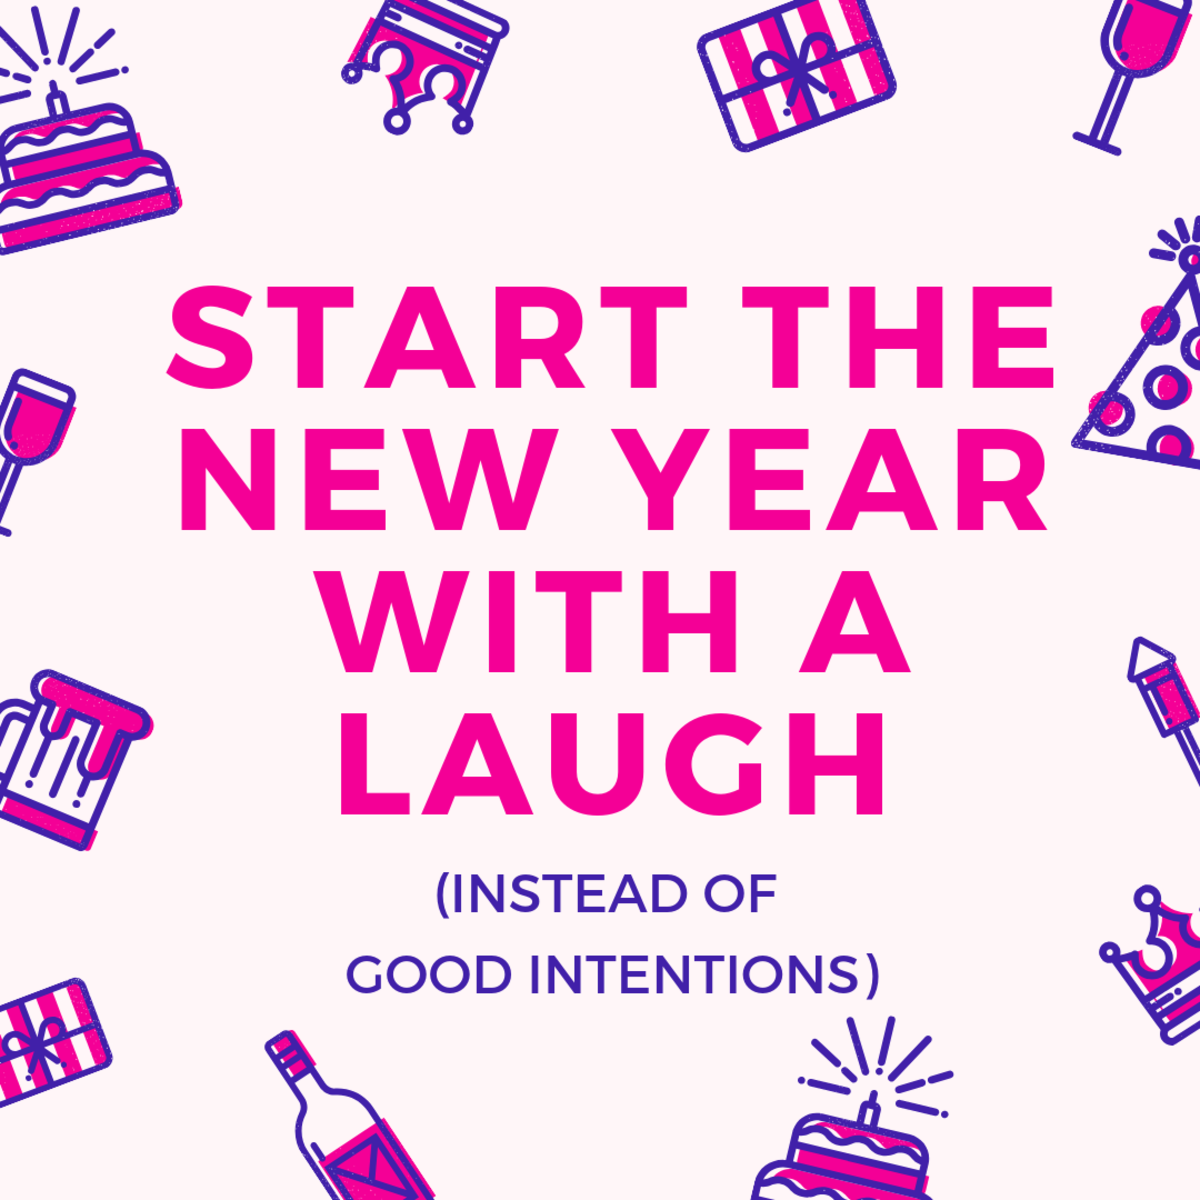 Why make real resolutions when you'll abandon them anyway?